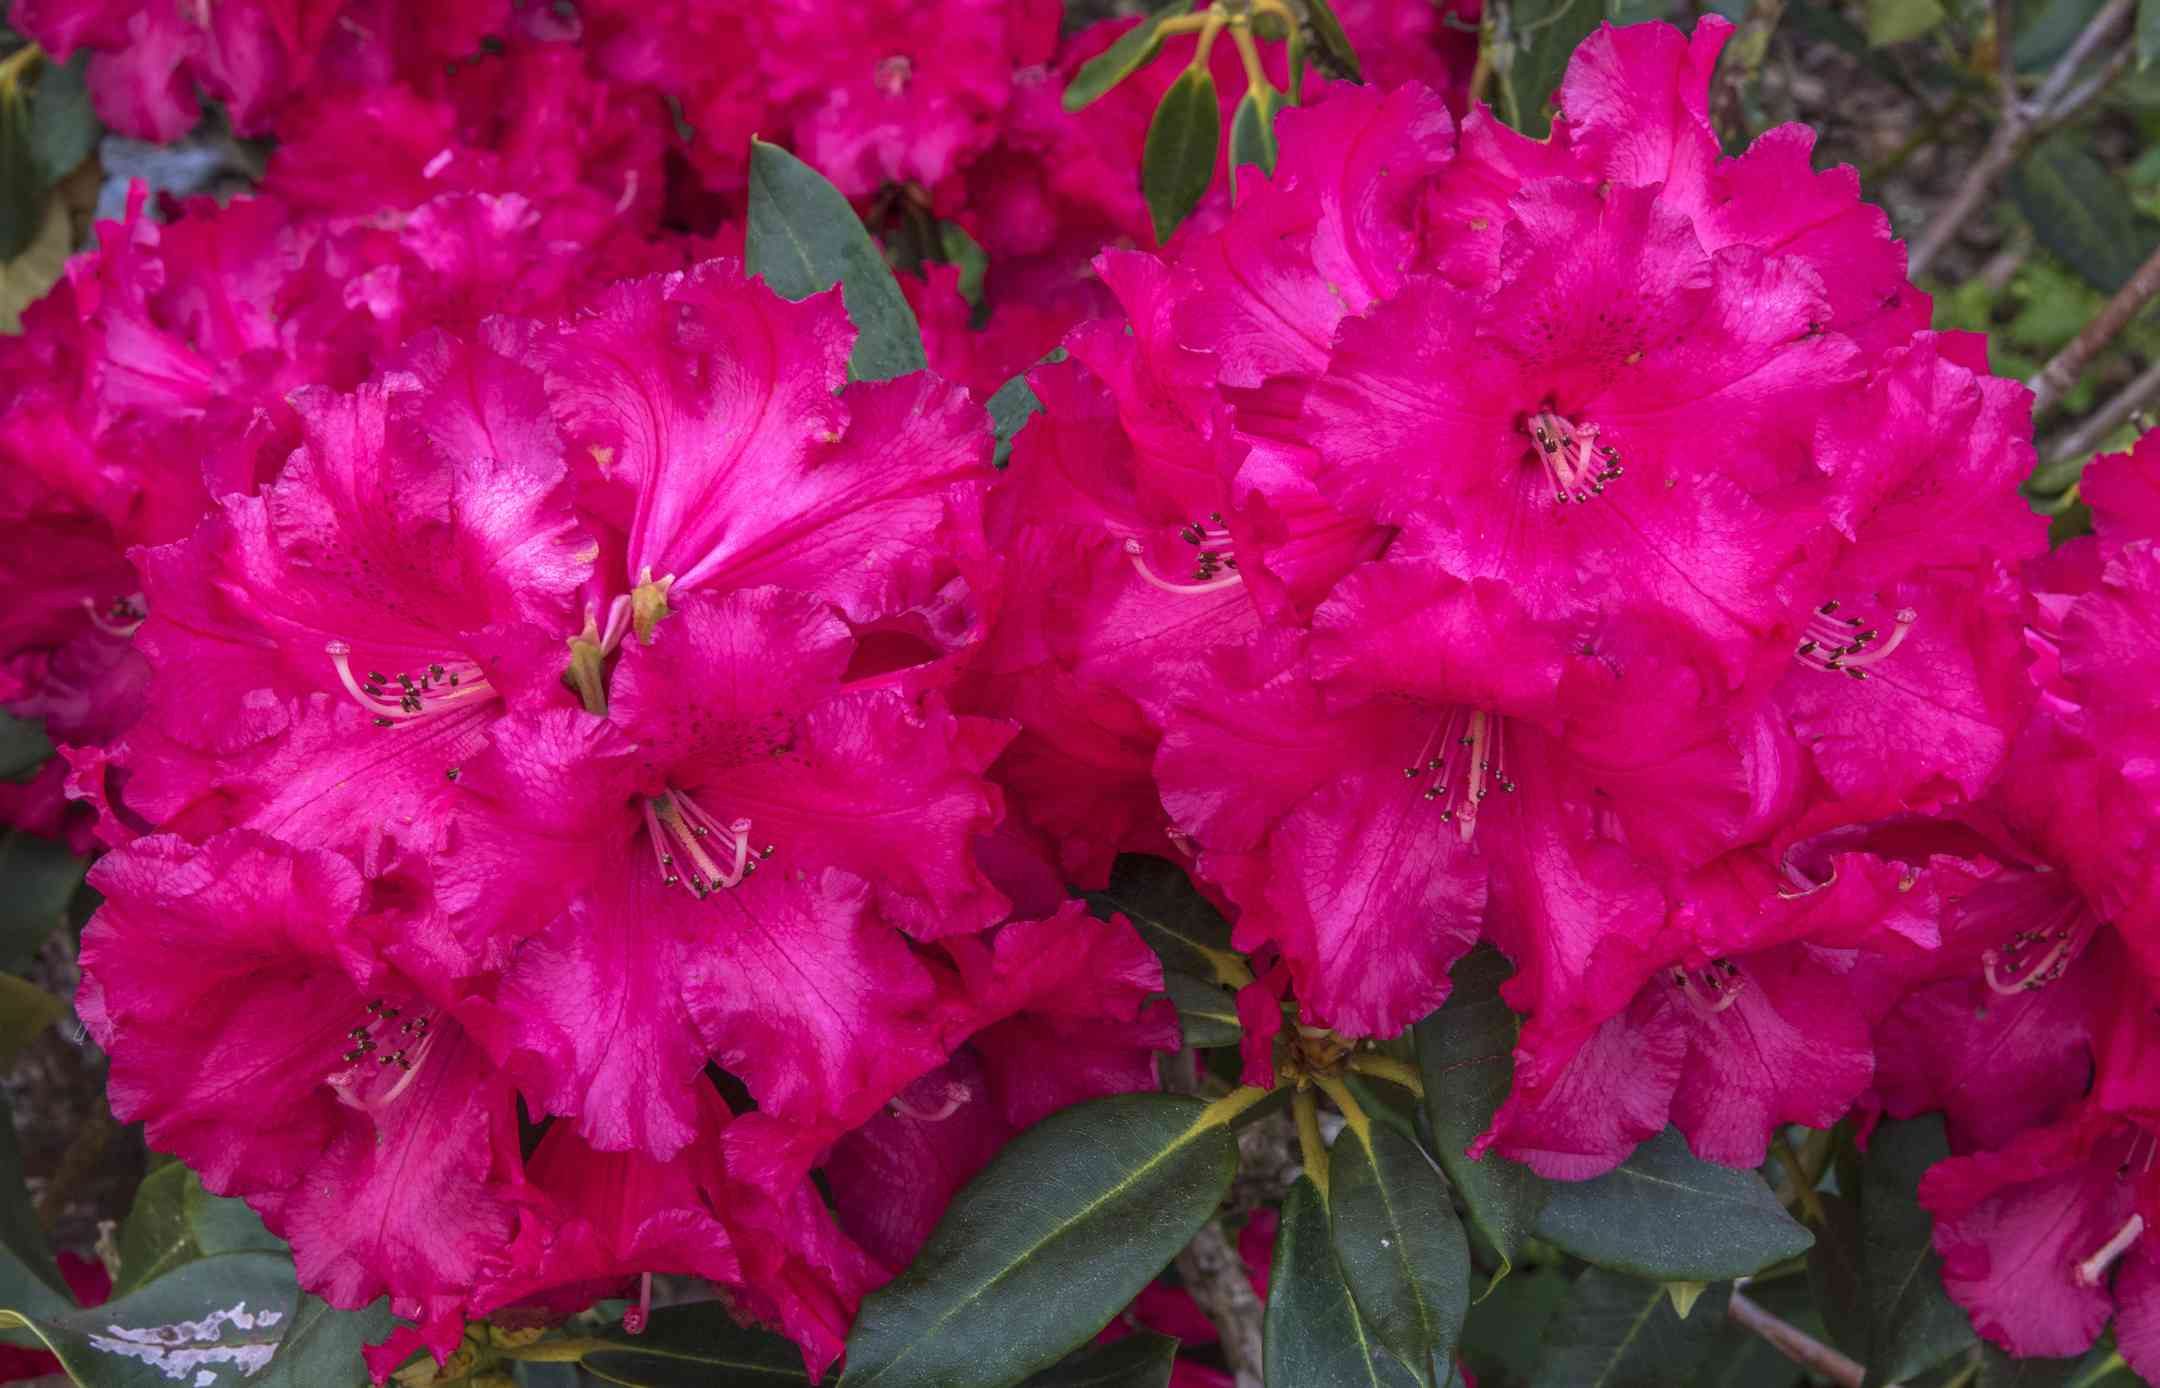 Hot-pink rhododendrons in bloom.